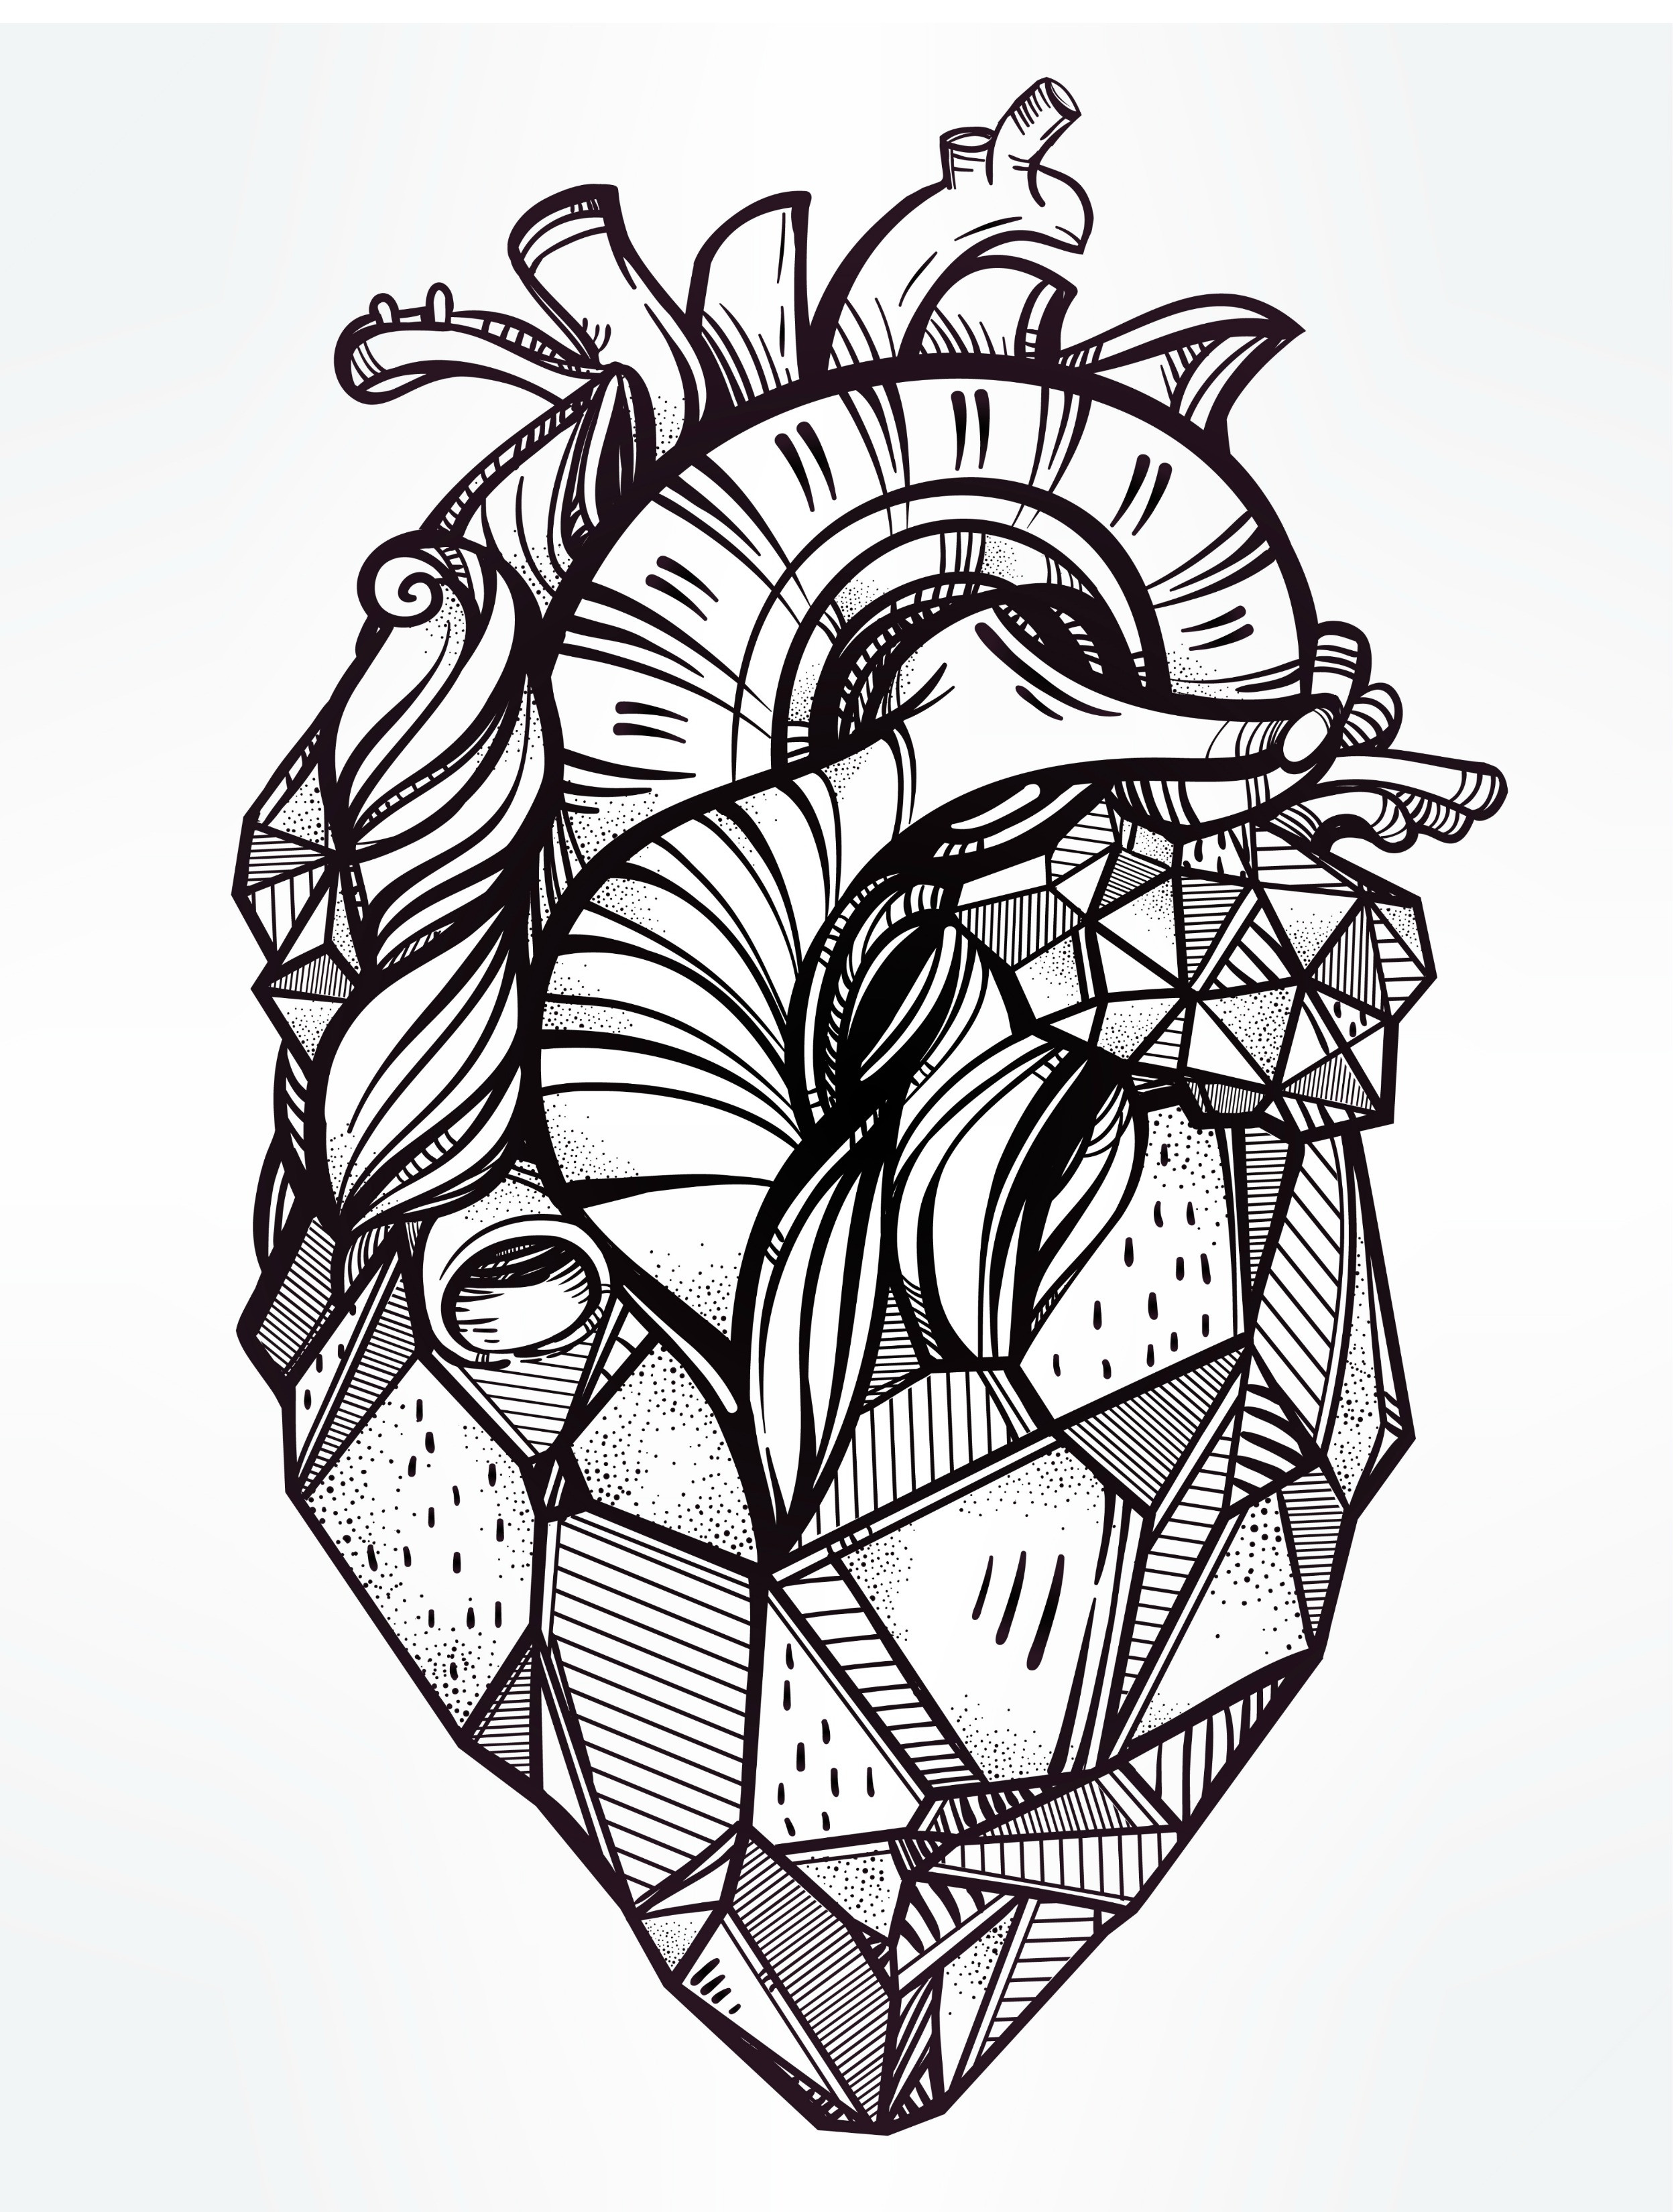 Printable Coloring Pages For Men  20 Free Printable Valentines Adult Coloring Pages Nerdy